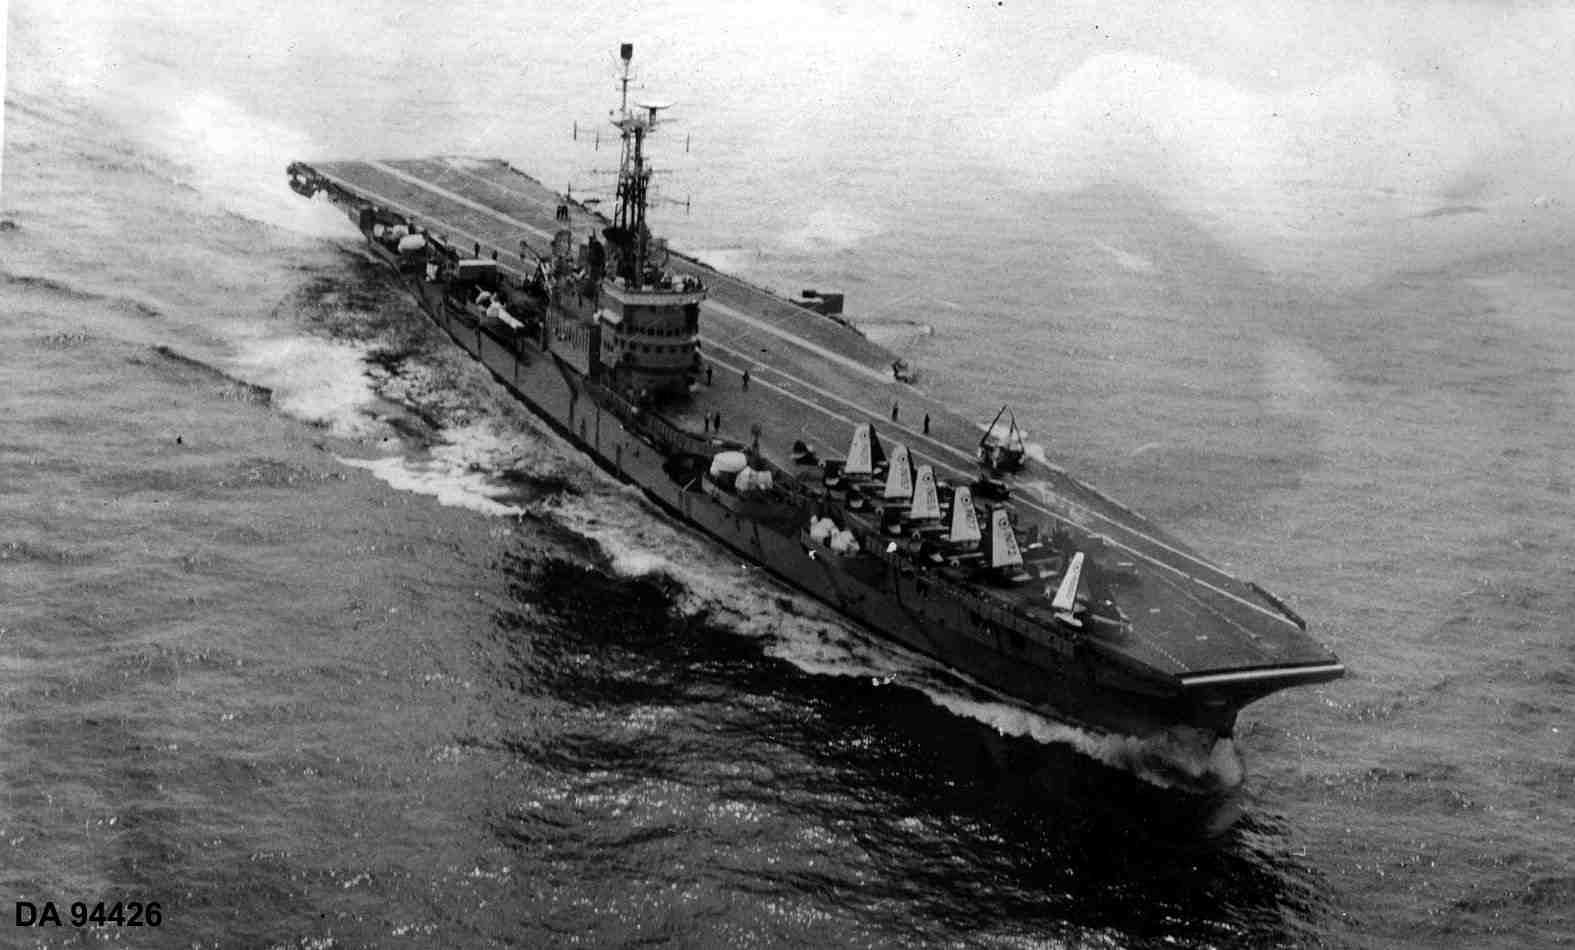 Ghazi Mystery: What Caused the Sinking of the Pak Submarine In 1971